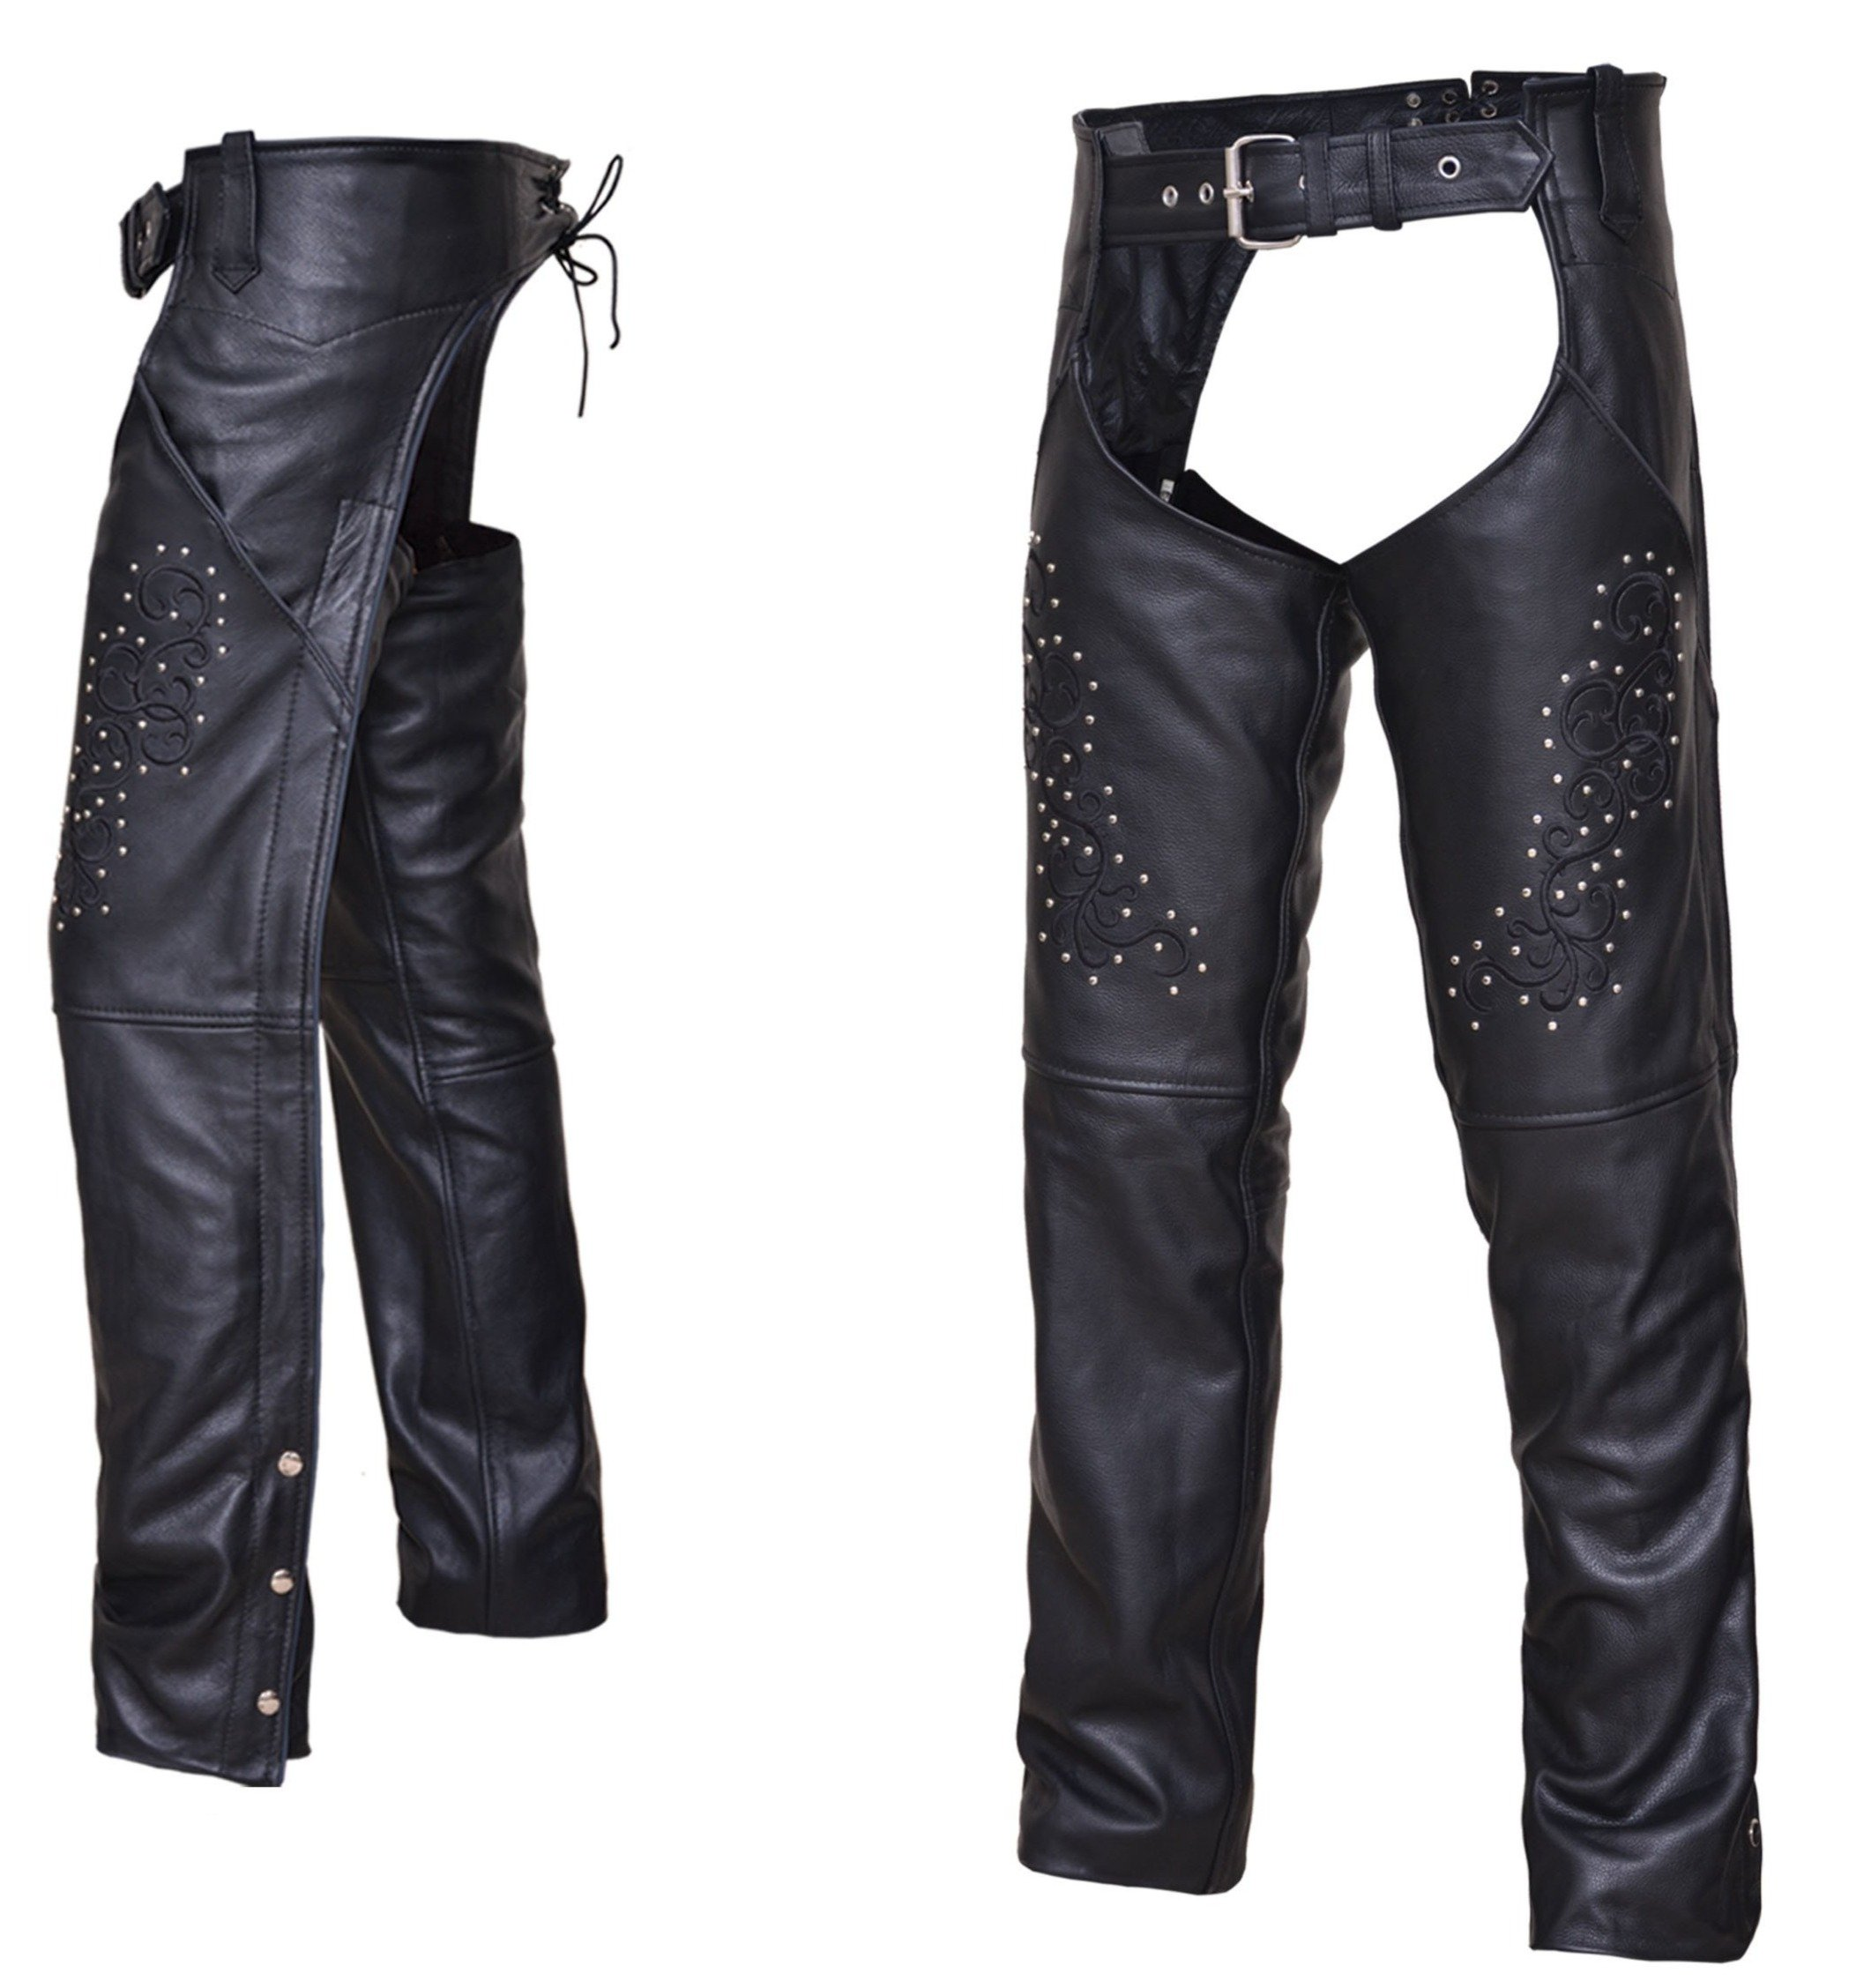 UNIK Ladies Premium Leather Motorcycle Chaps With Studs - SKU 7177-RF-UN